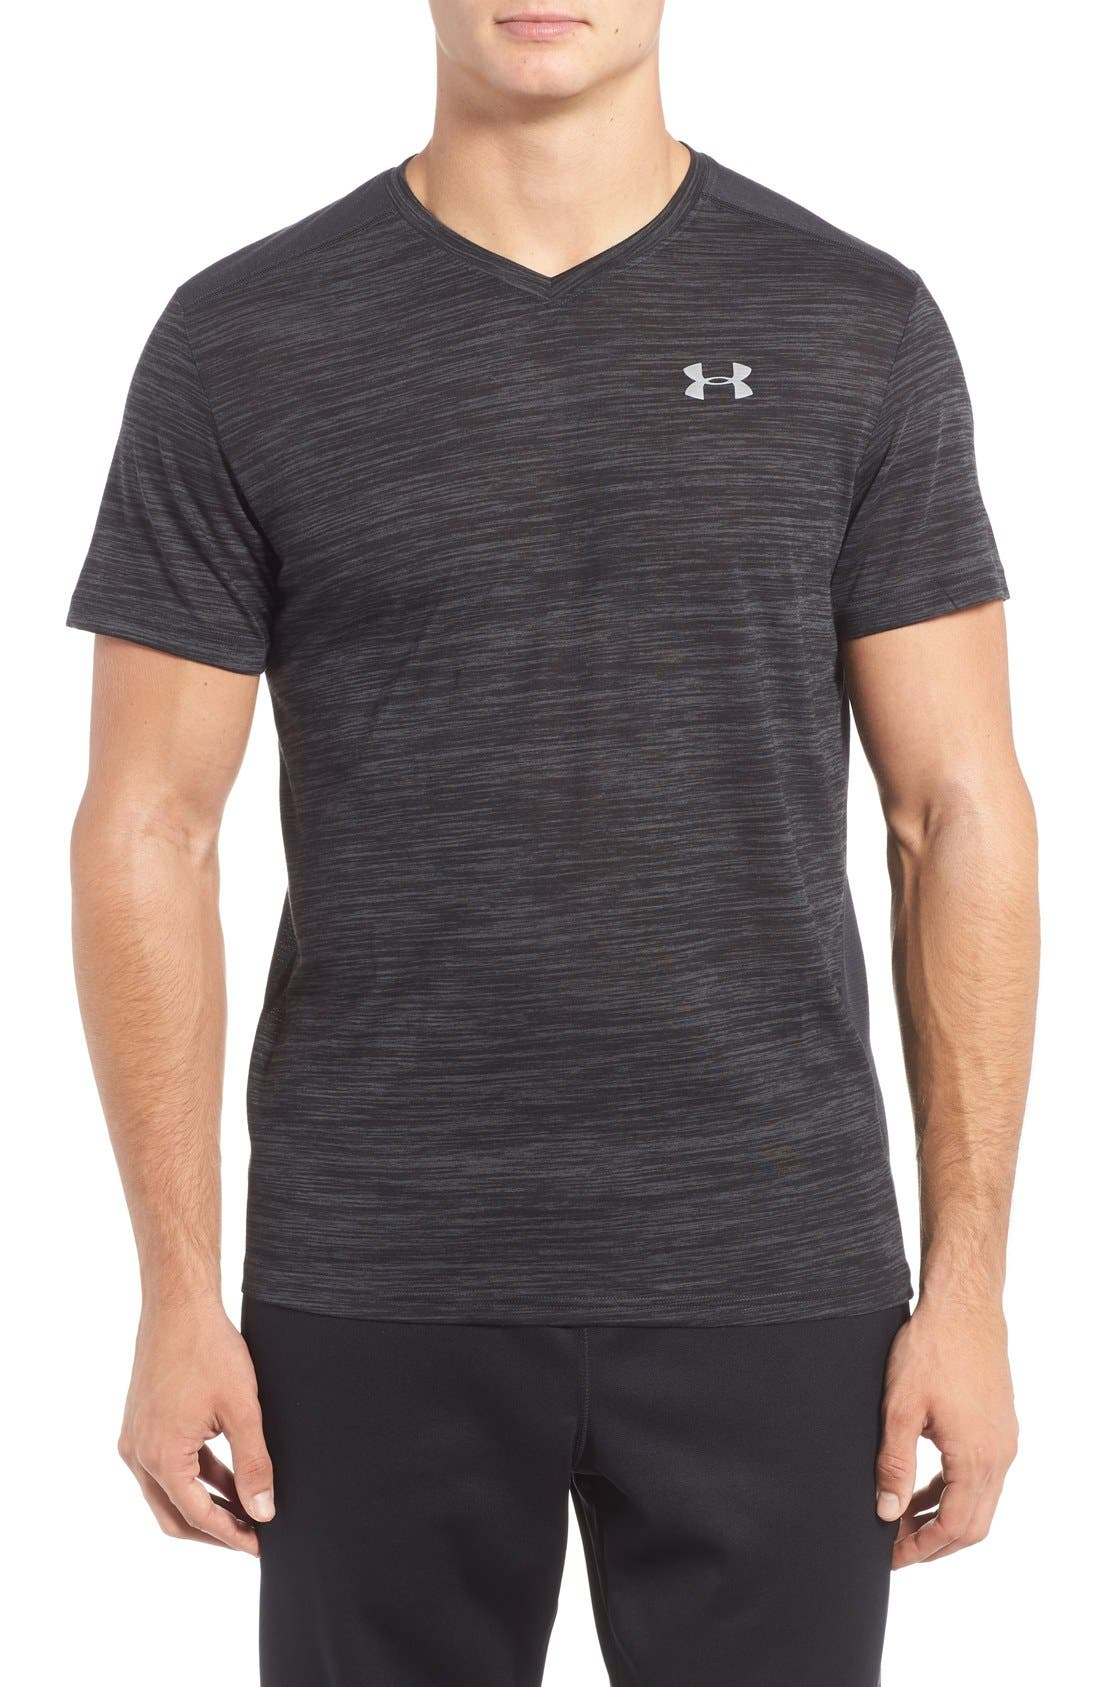 Alternate Image 1 Selected - Under Armour 'Streaker Run' Microthread V-Neck T-Shirt